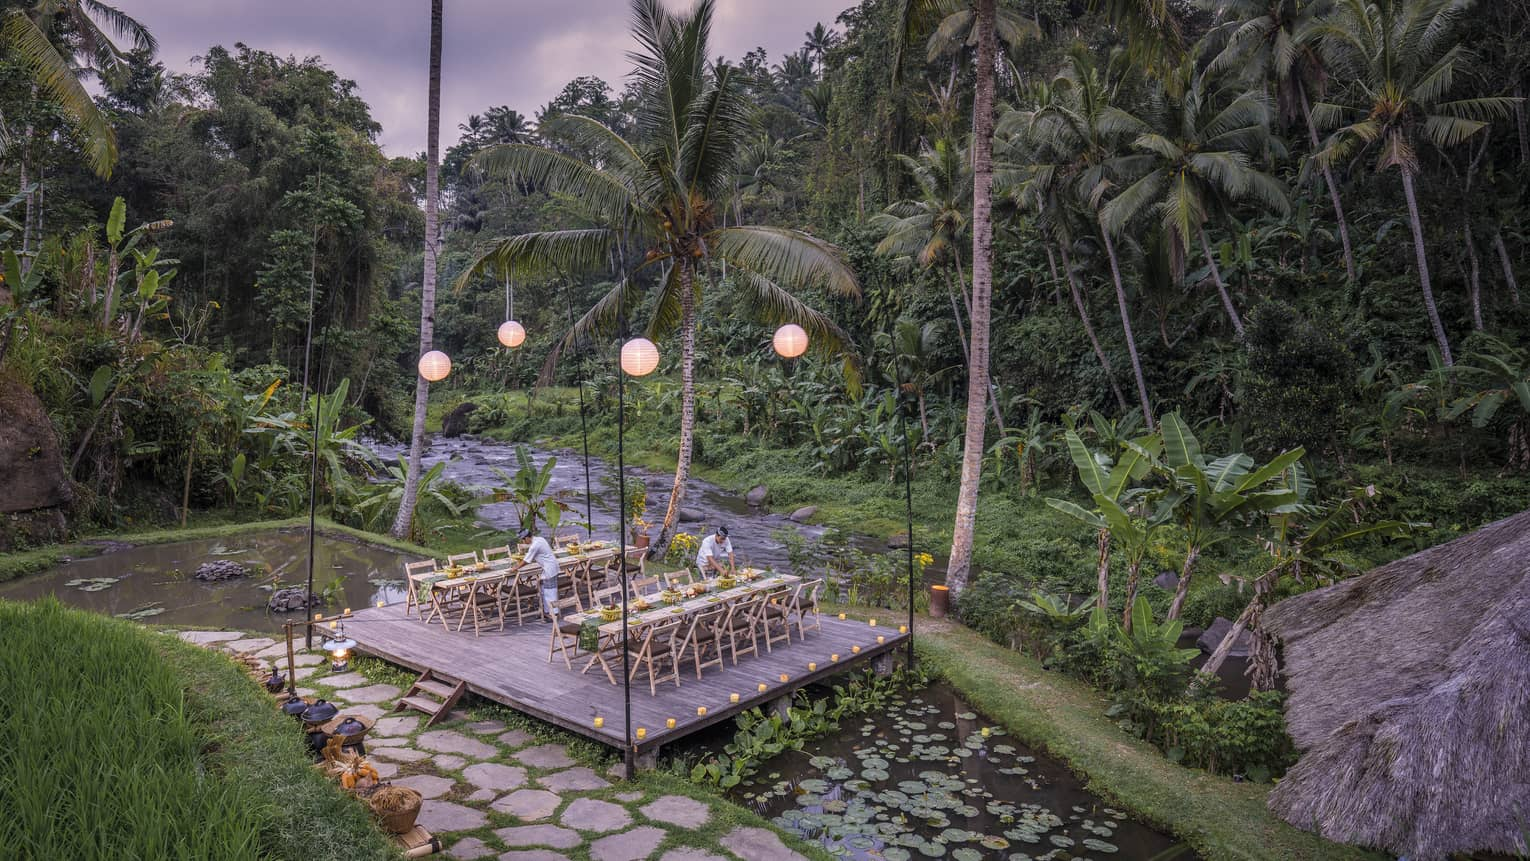 Megibung Dinner is set on a wooden deck as the sun sets beyond lush trees